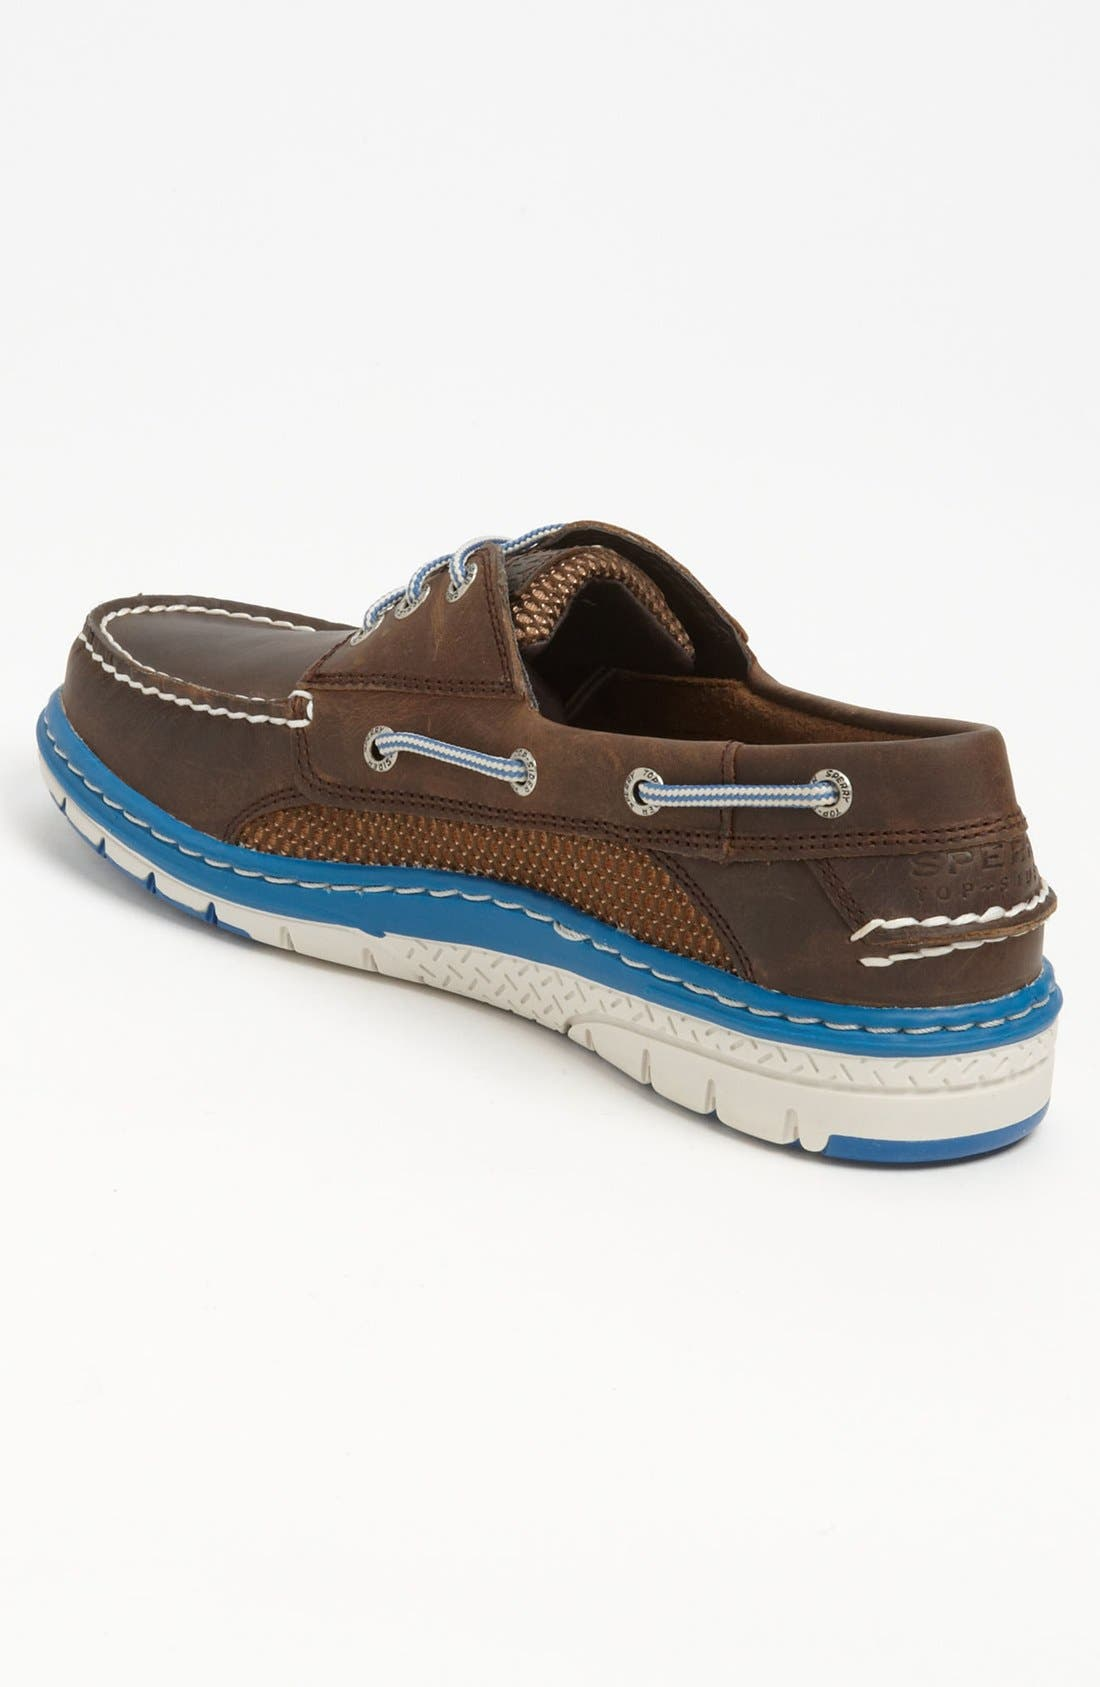 'Billfish Ultralite' Boat Shoe,                             Alternate thumbnail 69, color,